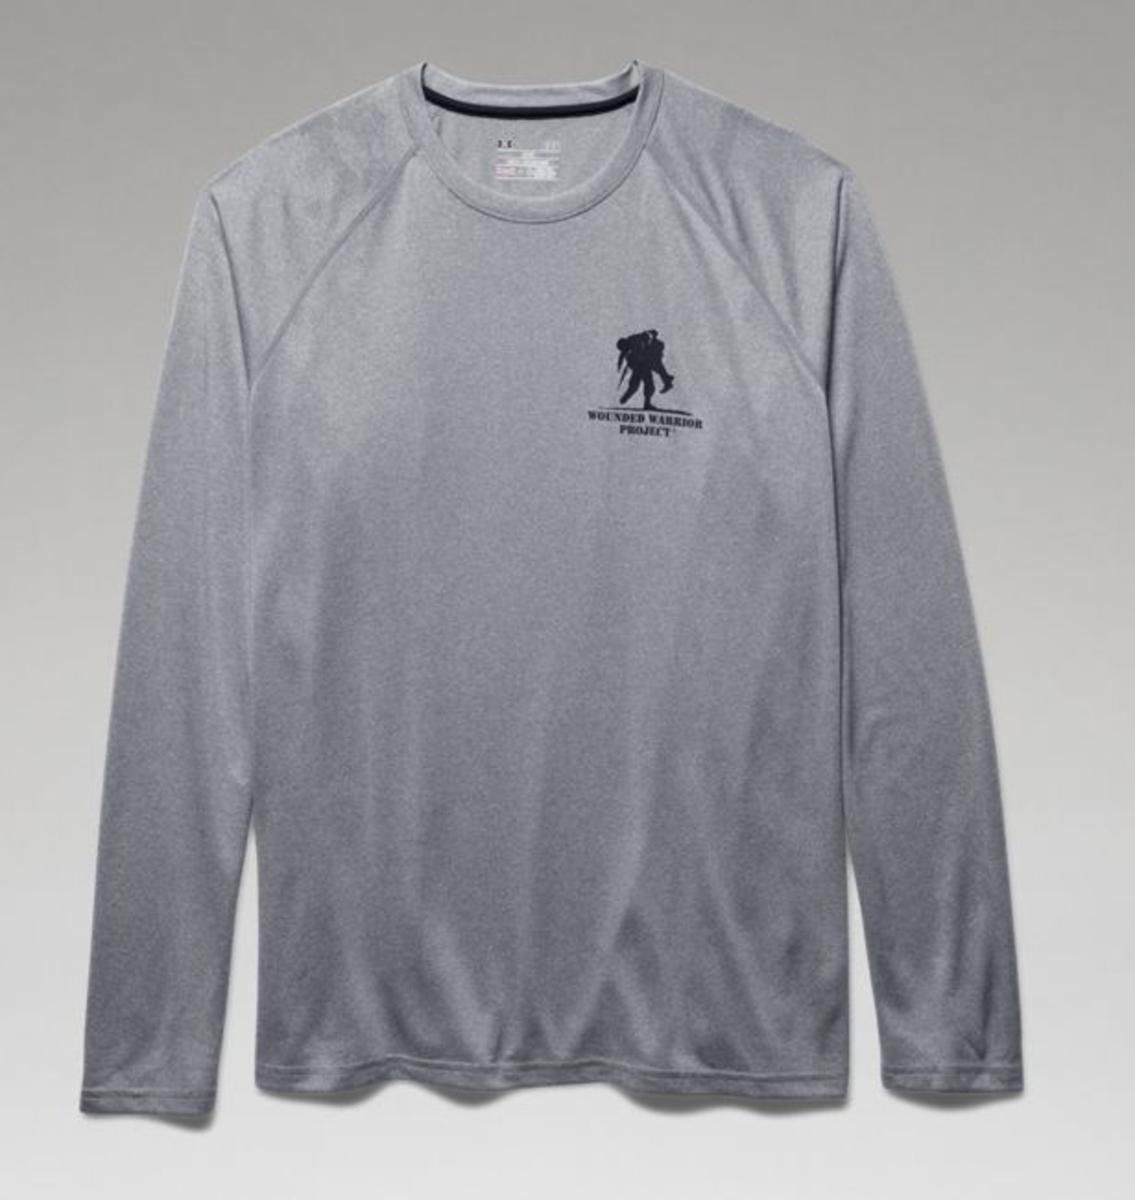 ad6580c0 Under Armour Men's Tech WWP Long Sleeve T-Shirt, Ultra Blue (907),  XX-Large: Amazon.in: Sports, Fitness & Outdoors